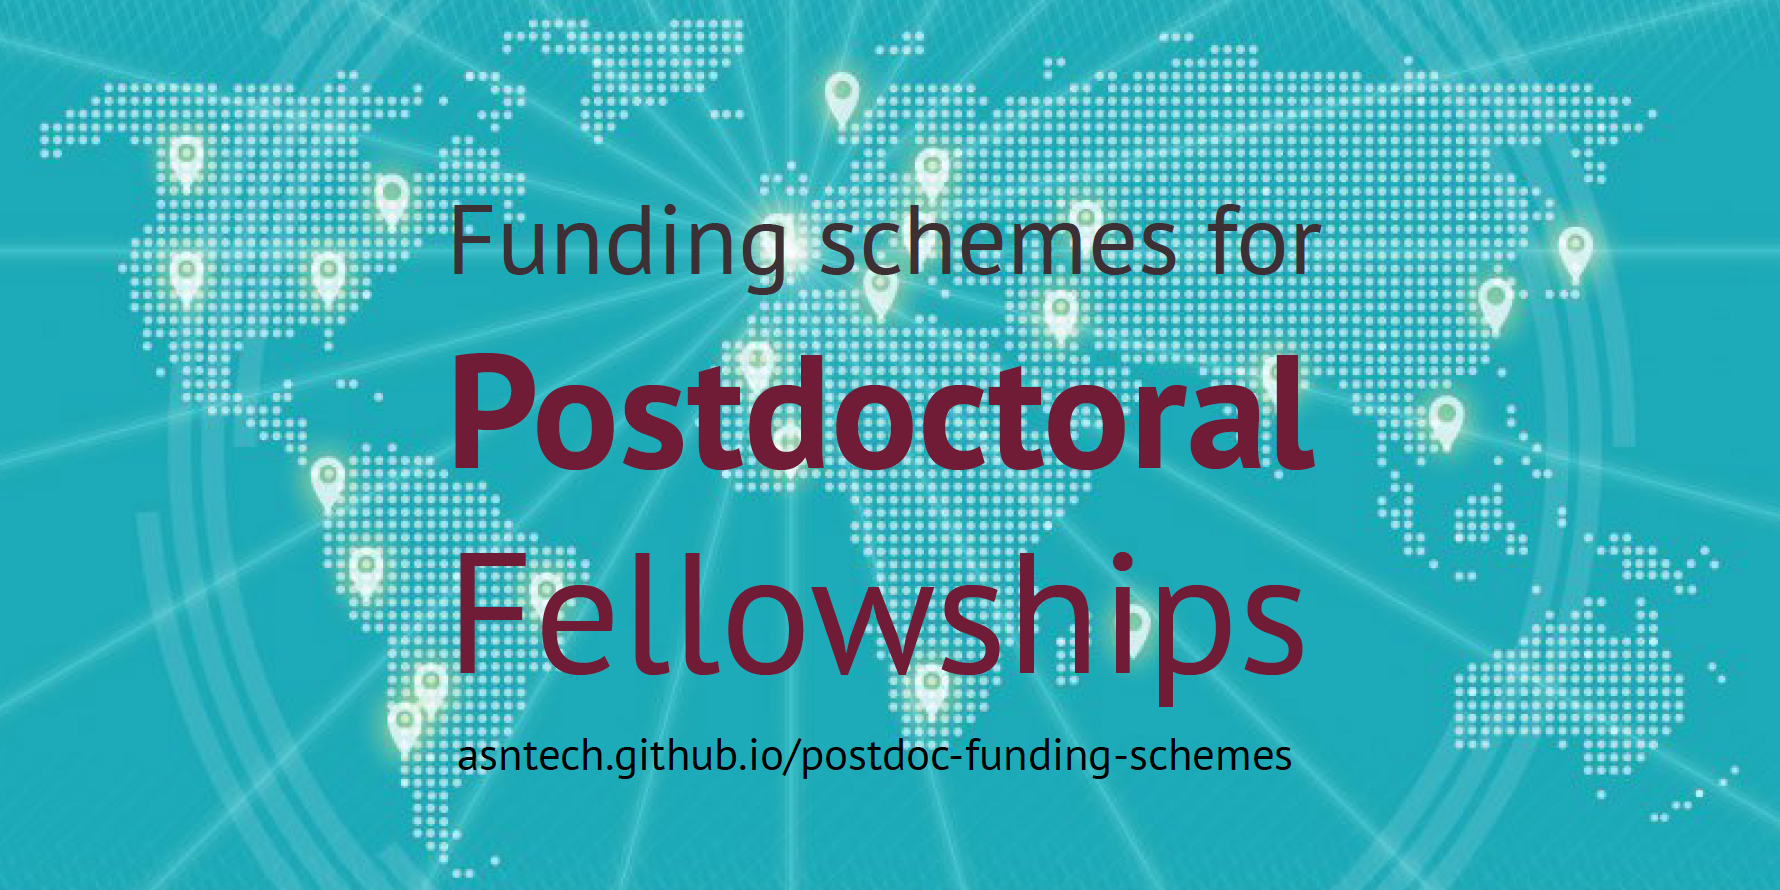 Funding schemes and opportunities for postdoctoral fellowships